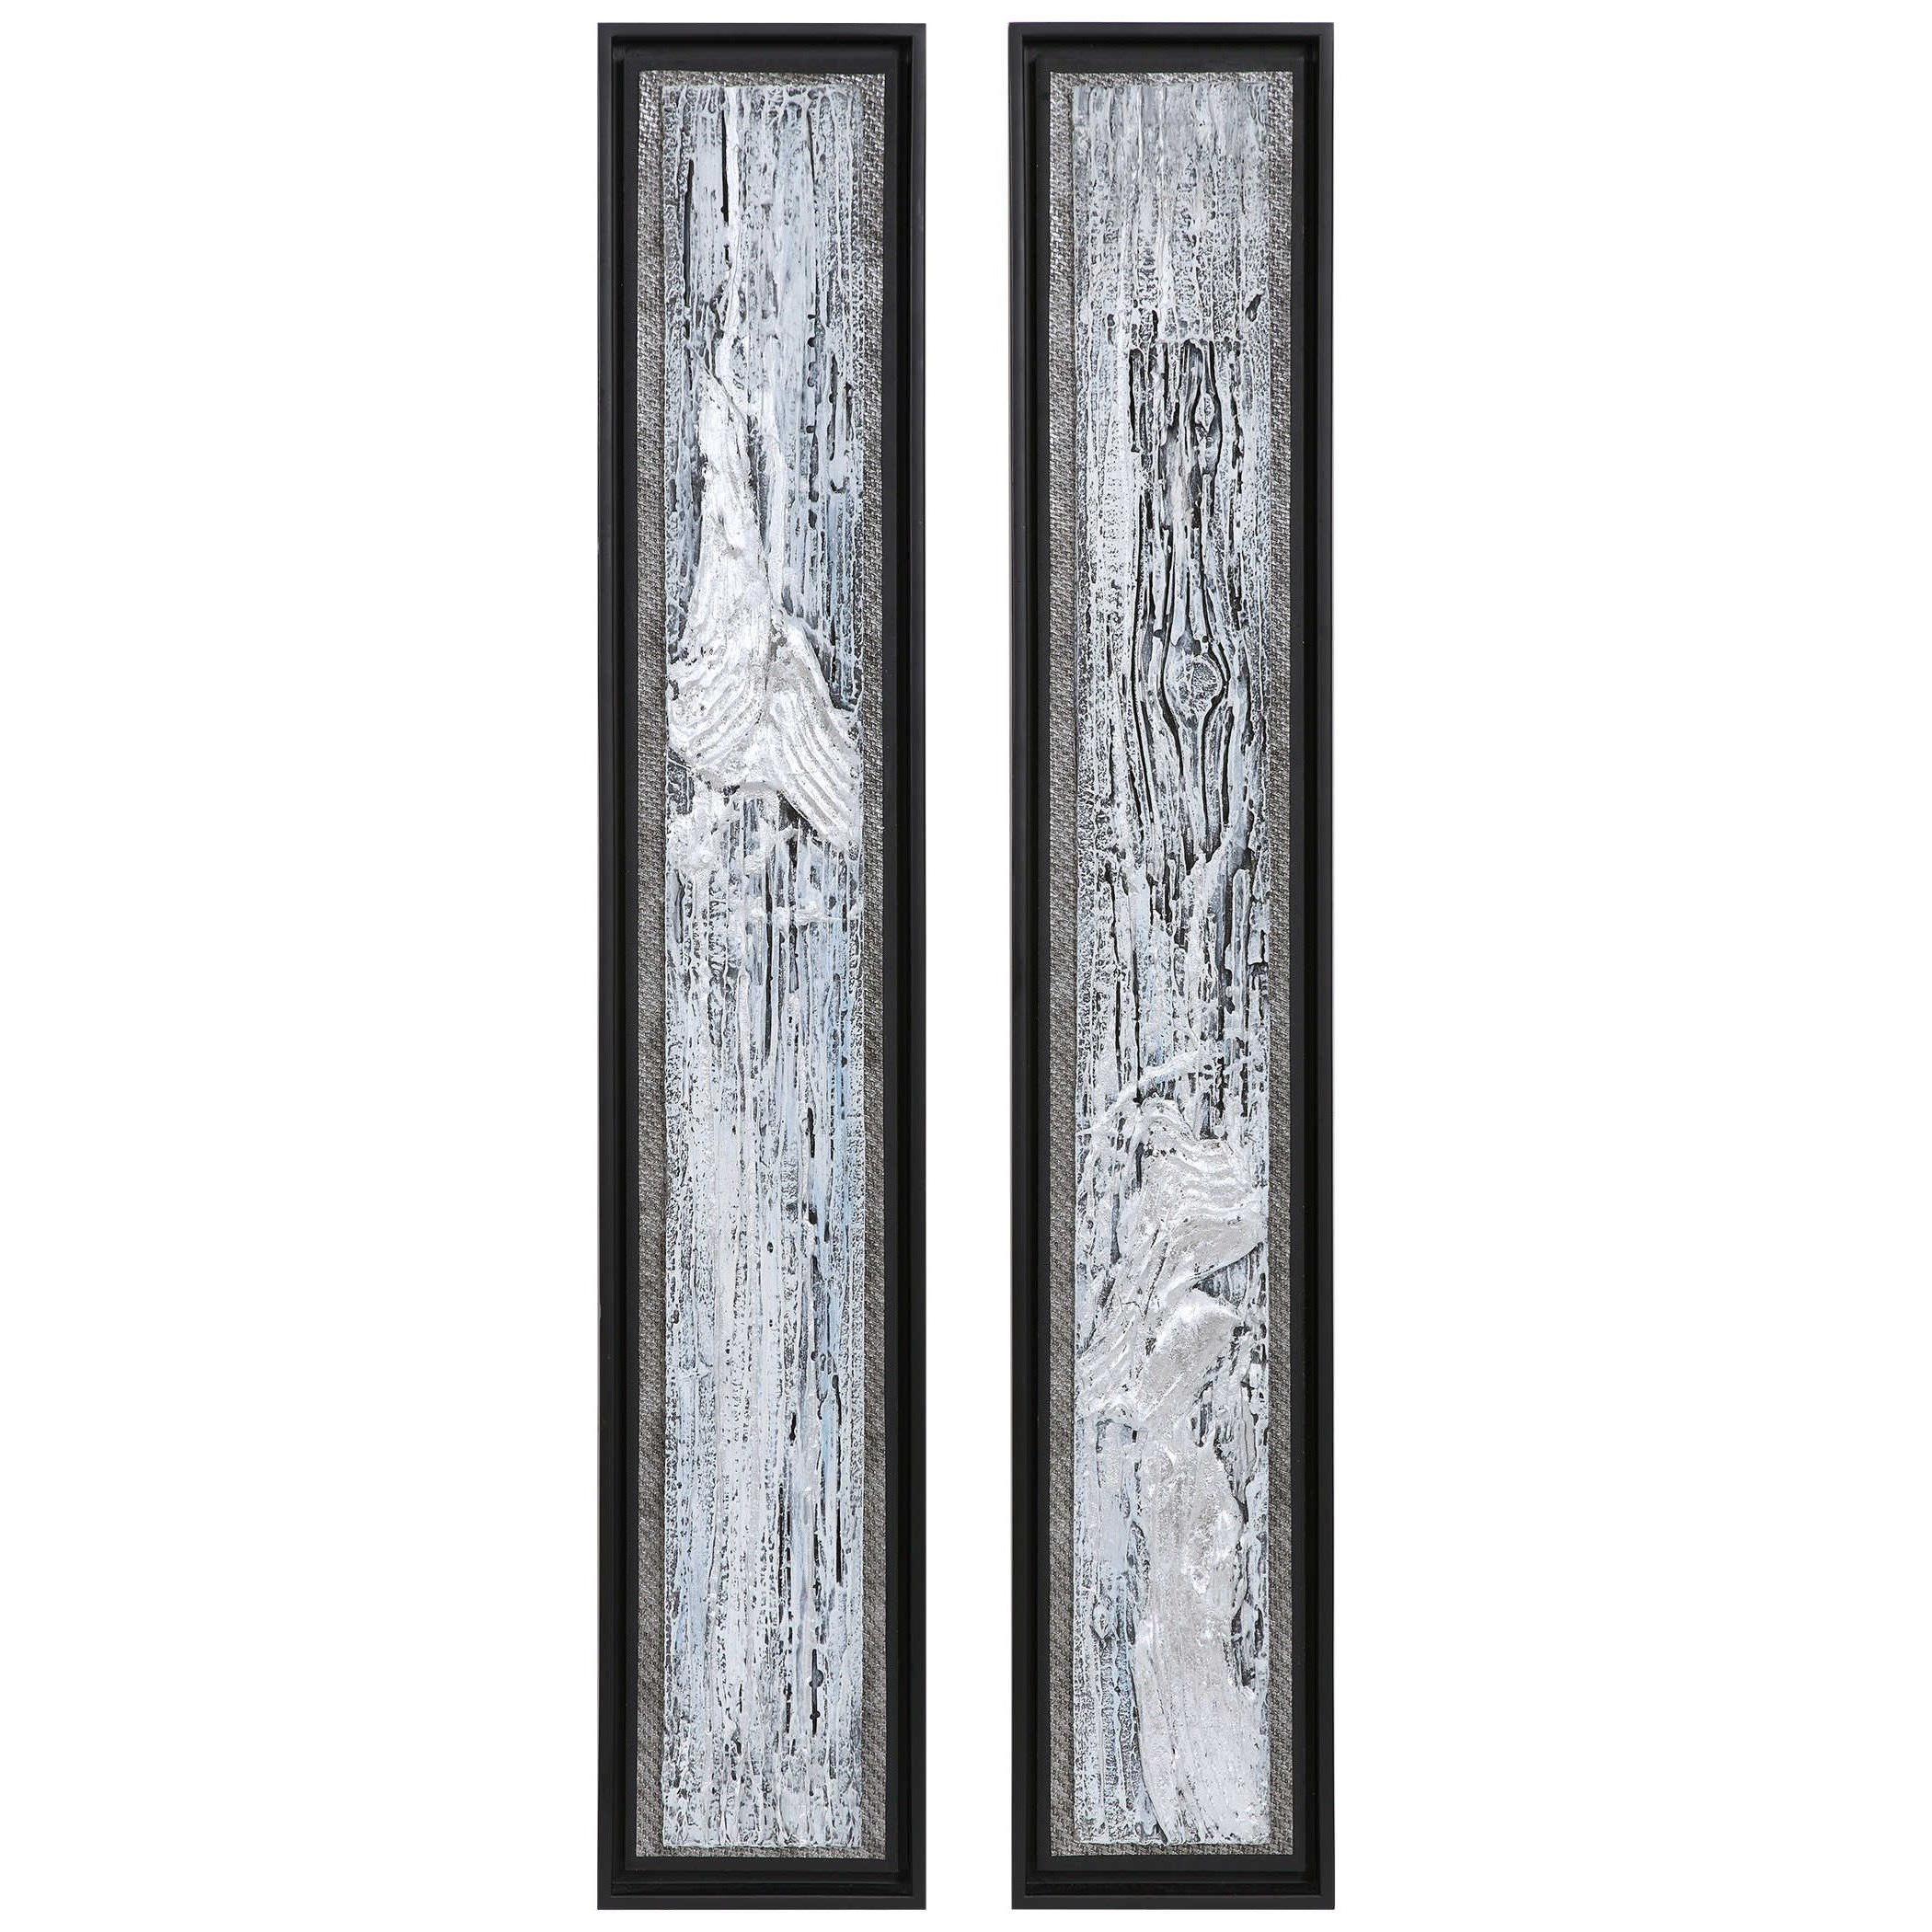 Silver Lining Textured Abstract Art, S/2